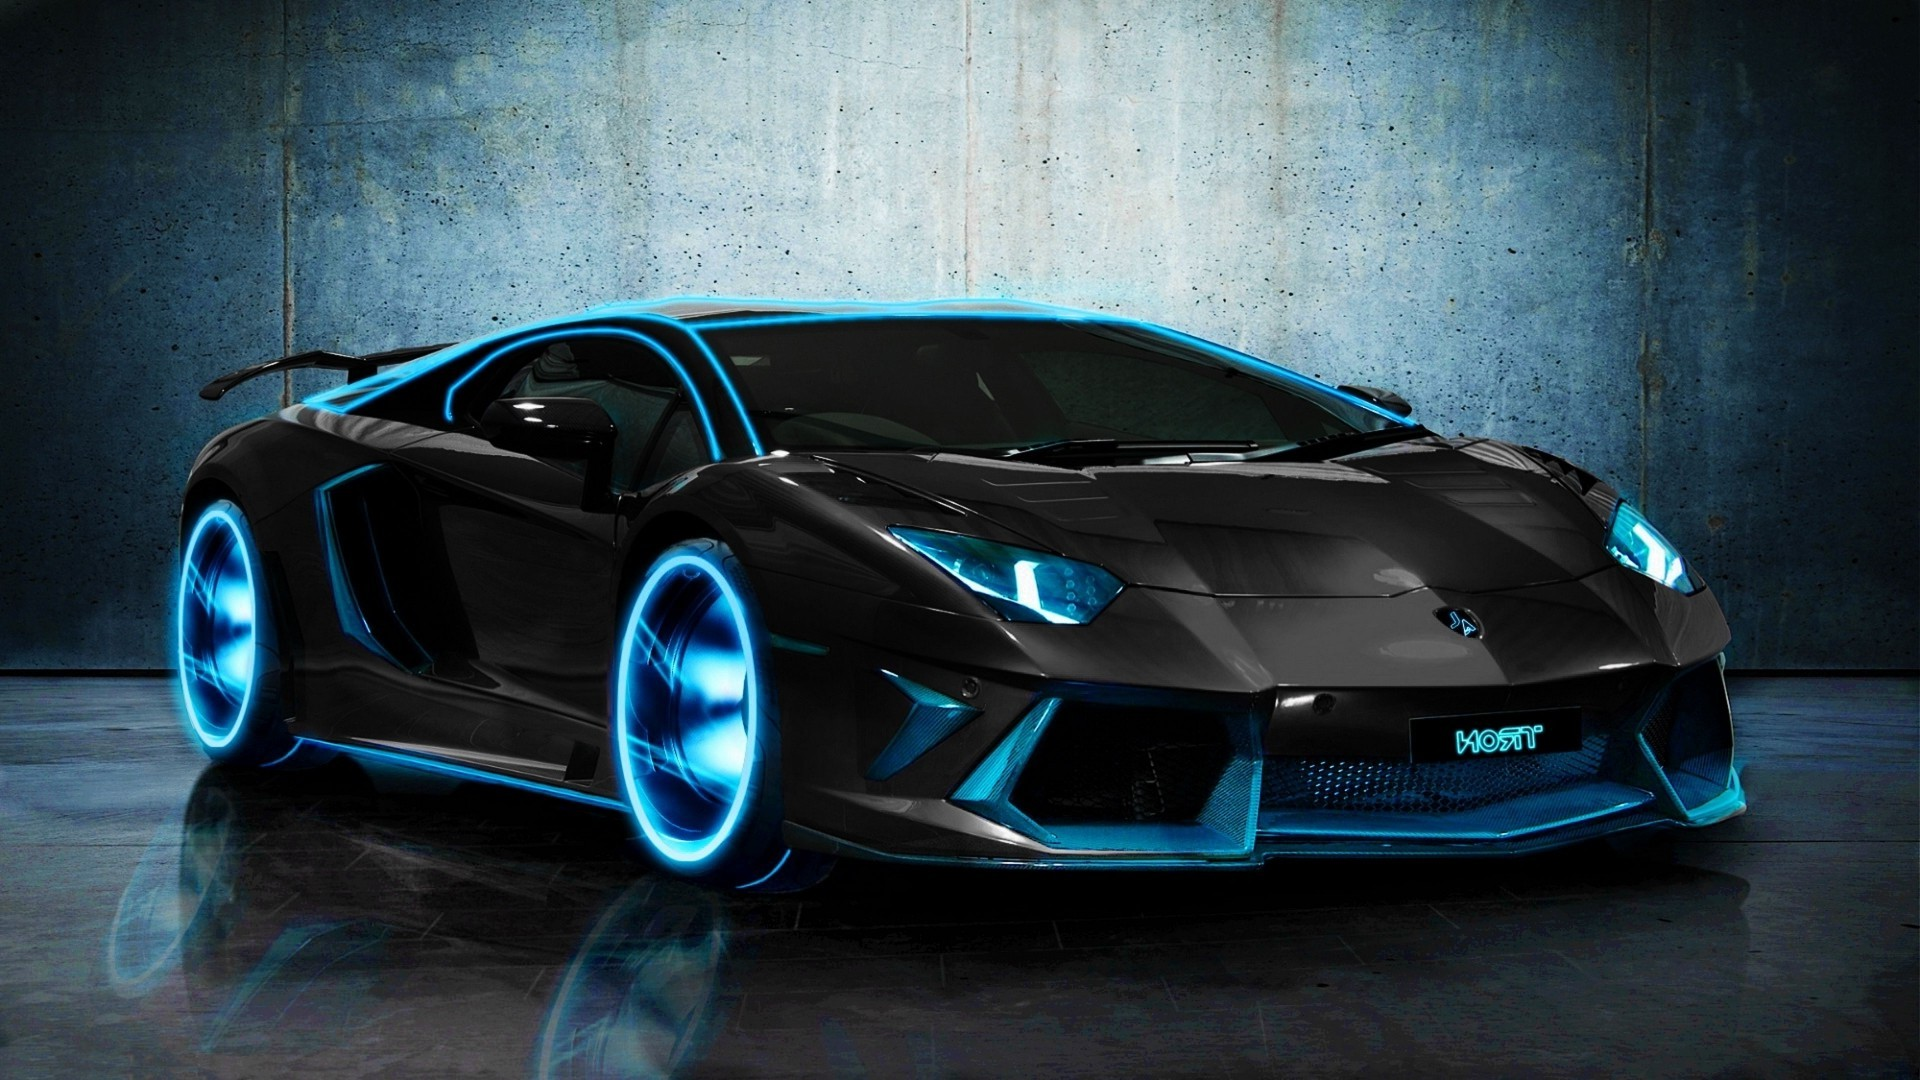 Amazing Stylish And Expensive Racing Cars Hd Wallpapers: Lamborghini